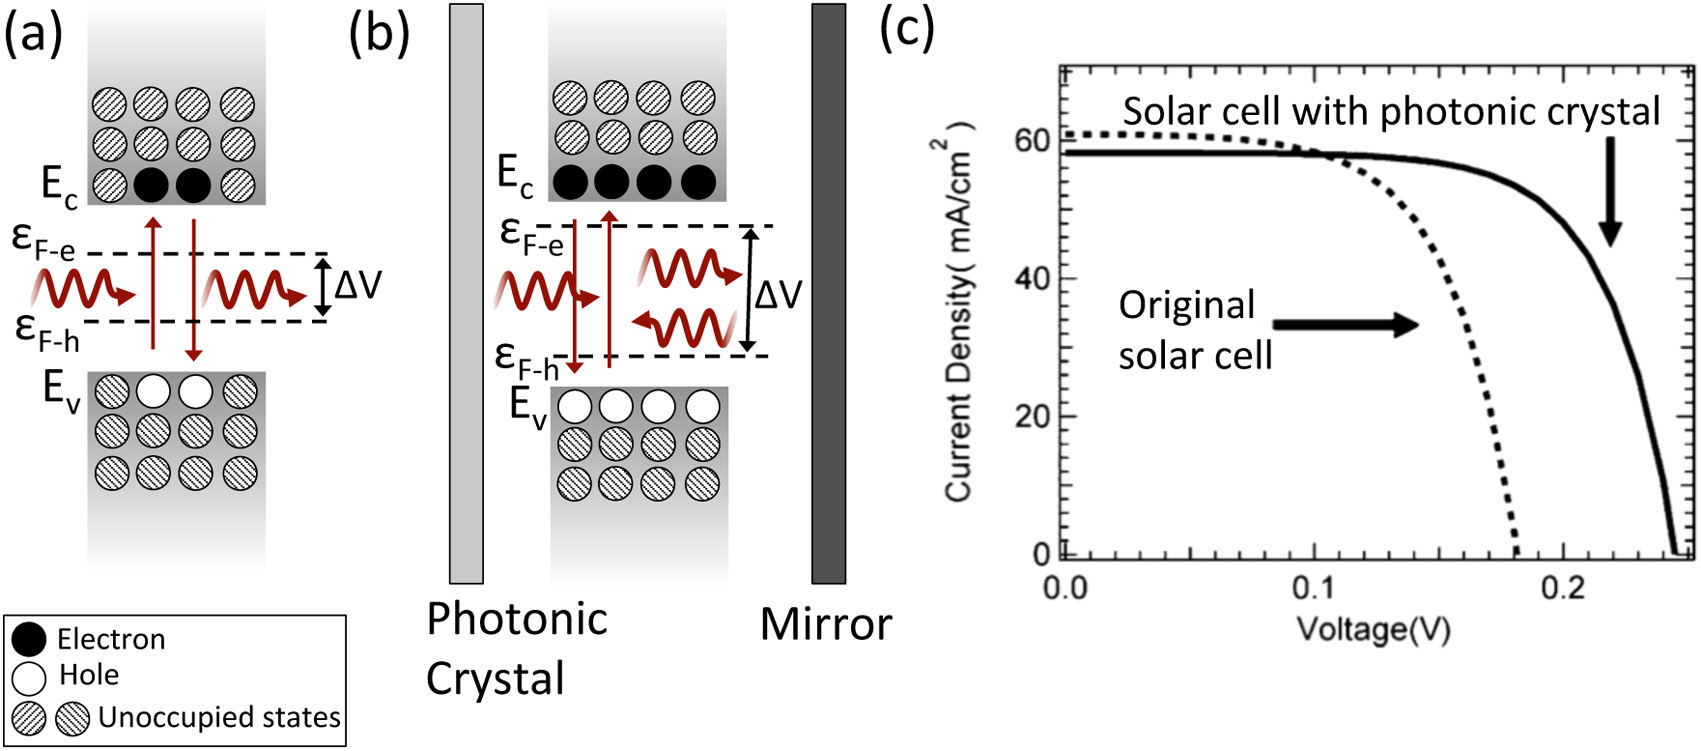 photonic structured solar cells to enhance current and